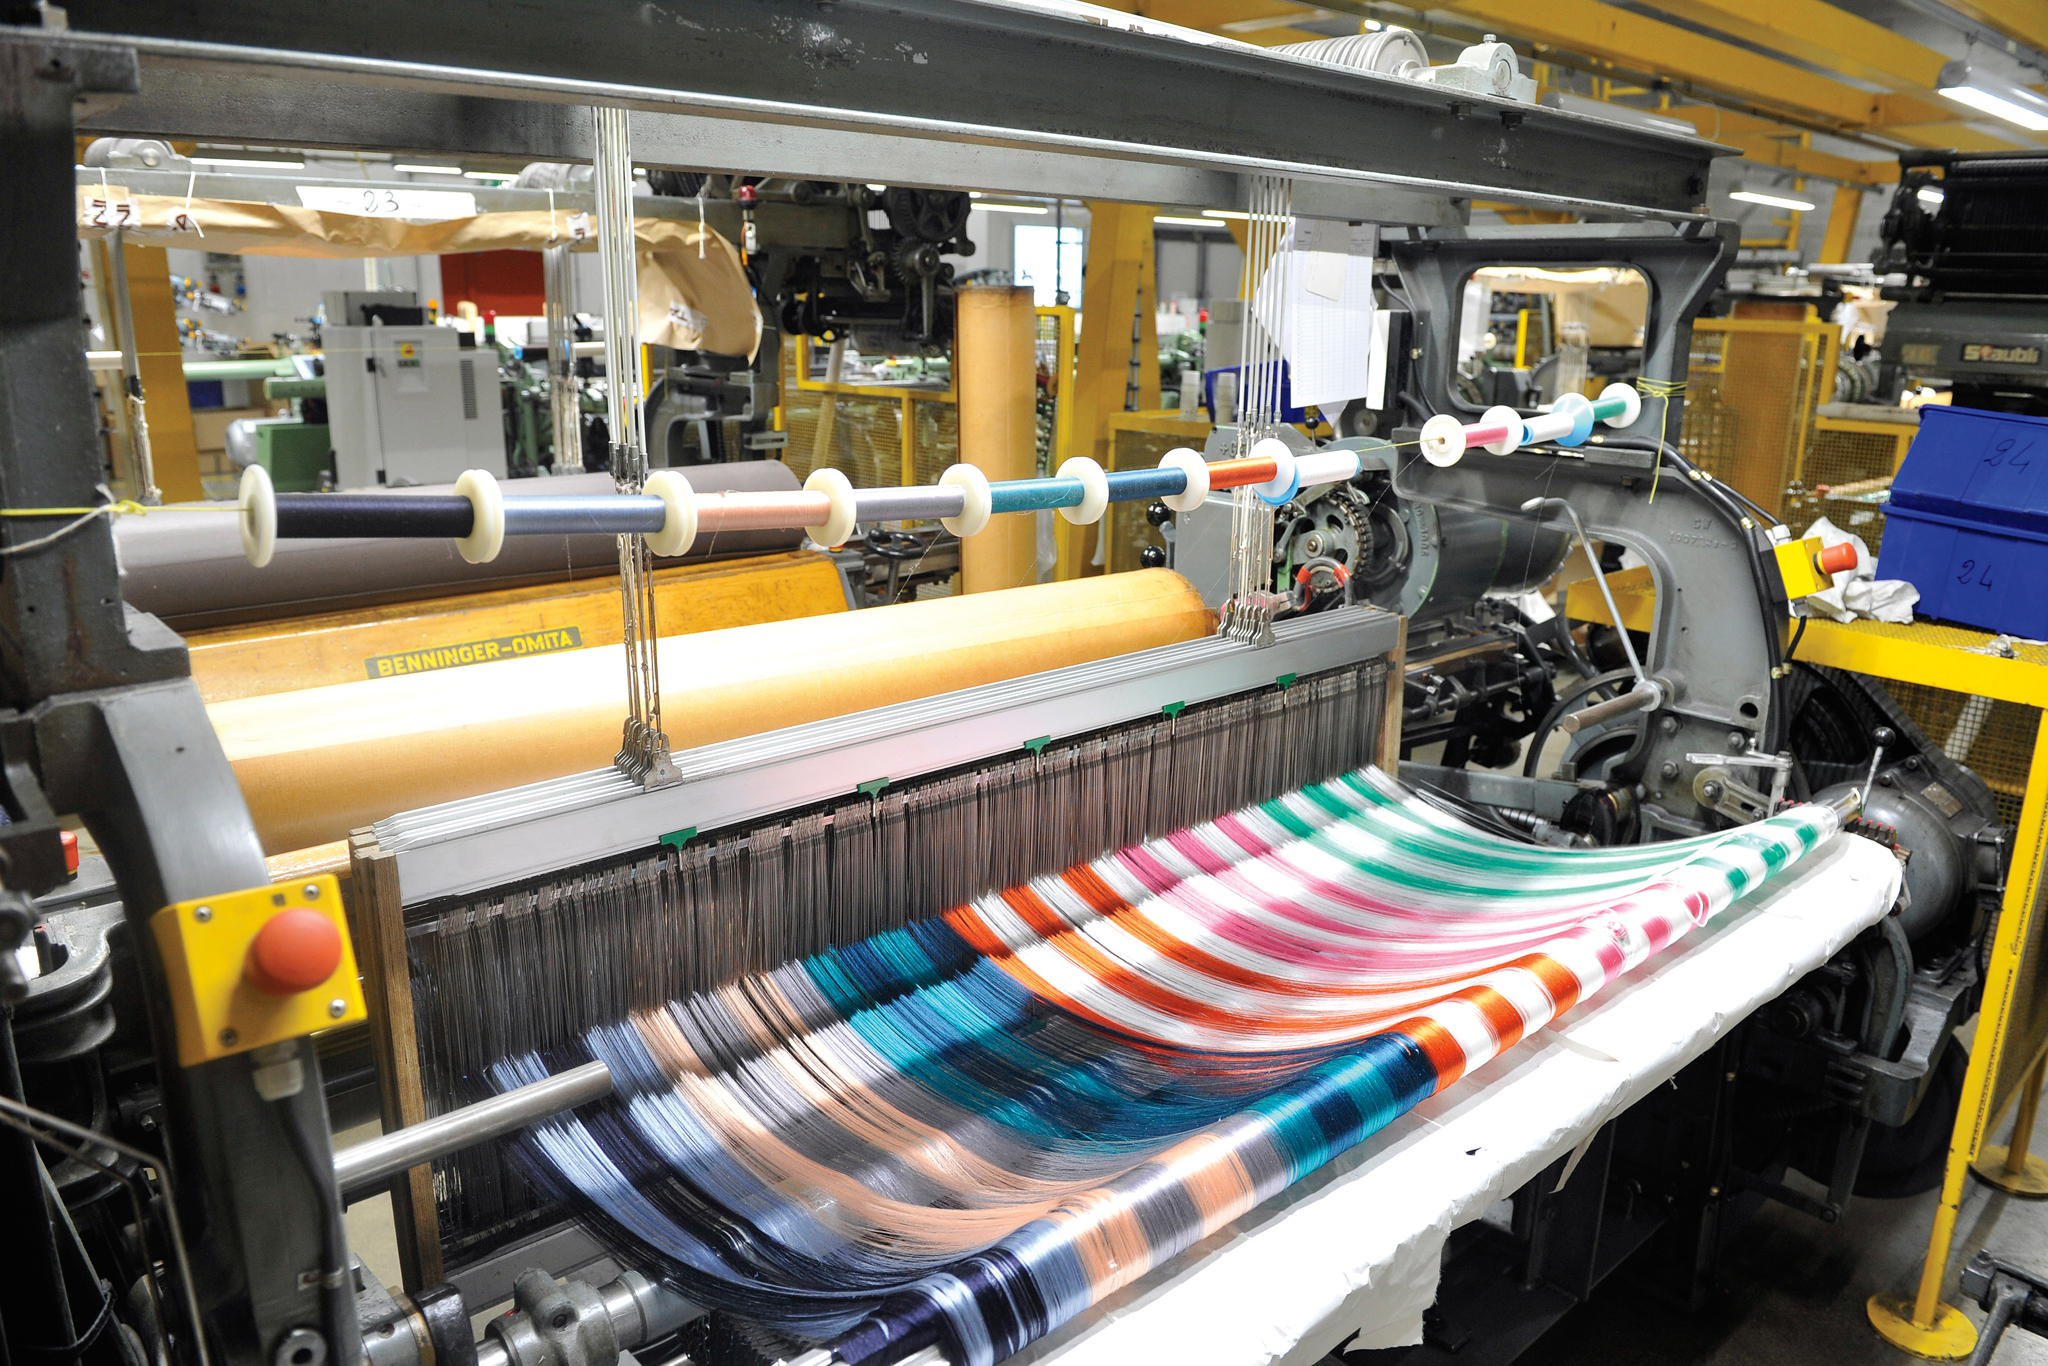 Established in 1902, Mantero produces and distributes silk prints and fabrics.